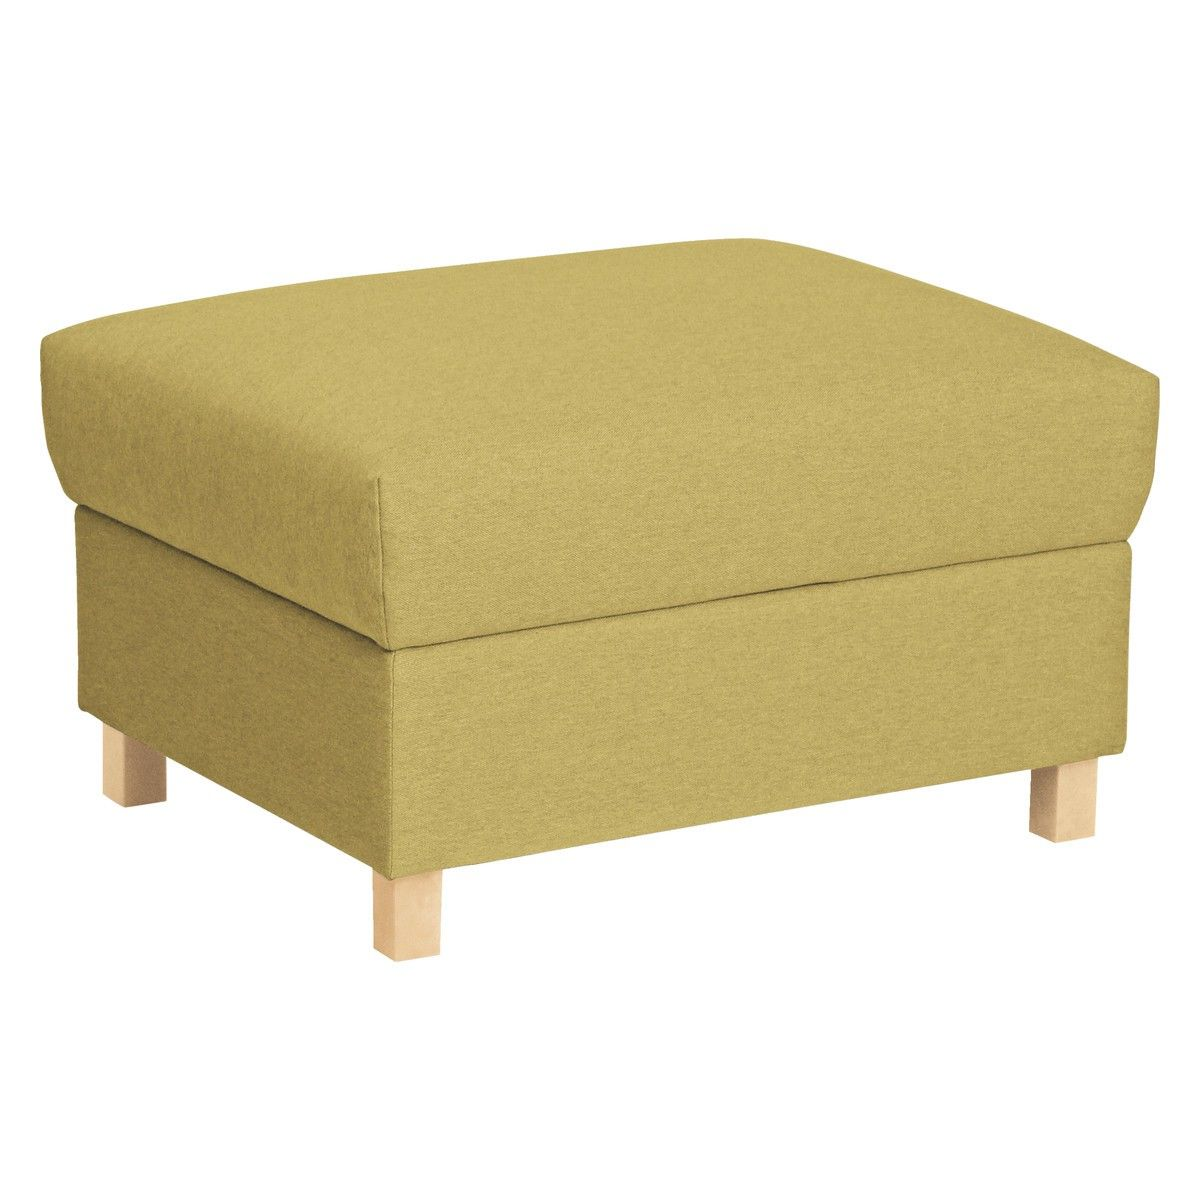 Pleasant Colombo Saffron Yellow Fabric Storage Footstool In 2019 Spiritservingveterans Wood Chair Design Ideas Spiritservingveteransorg